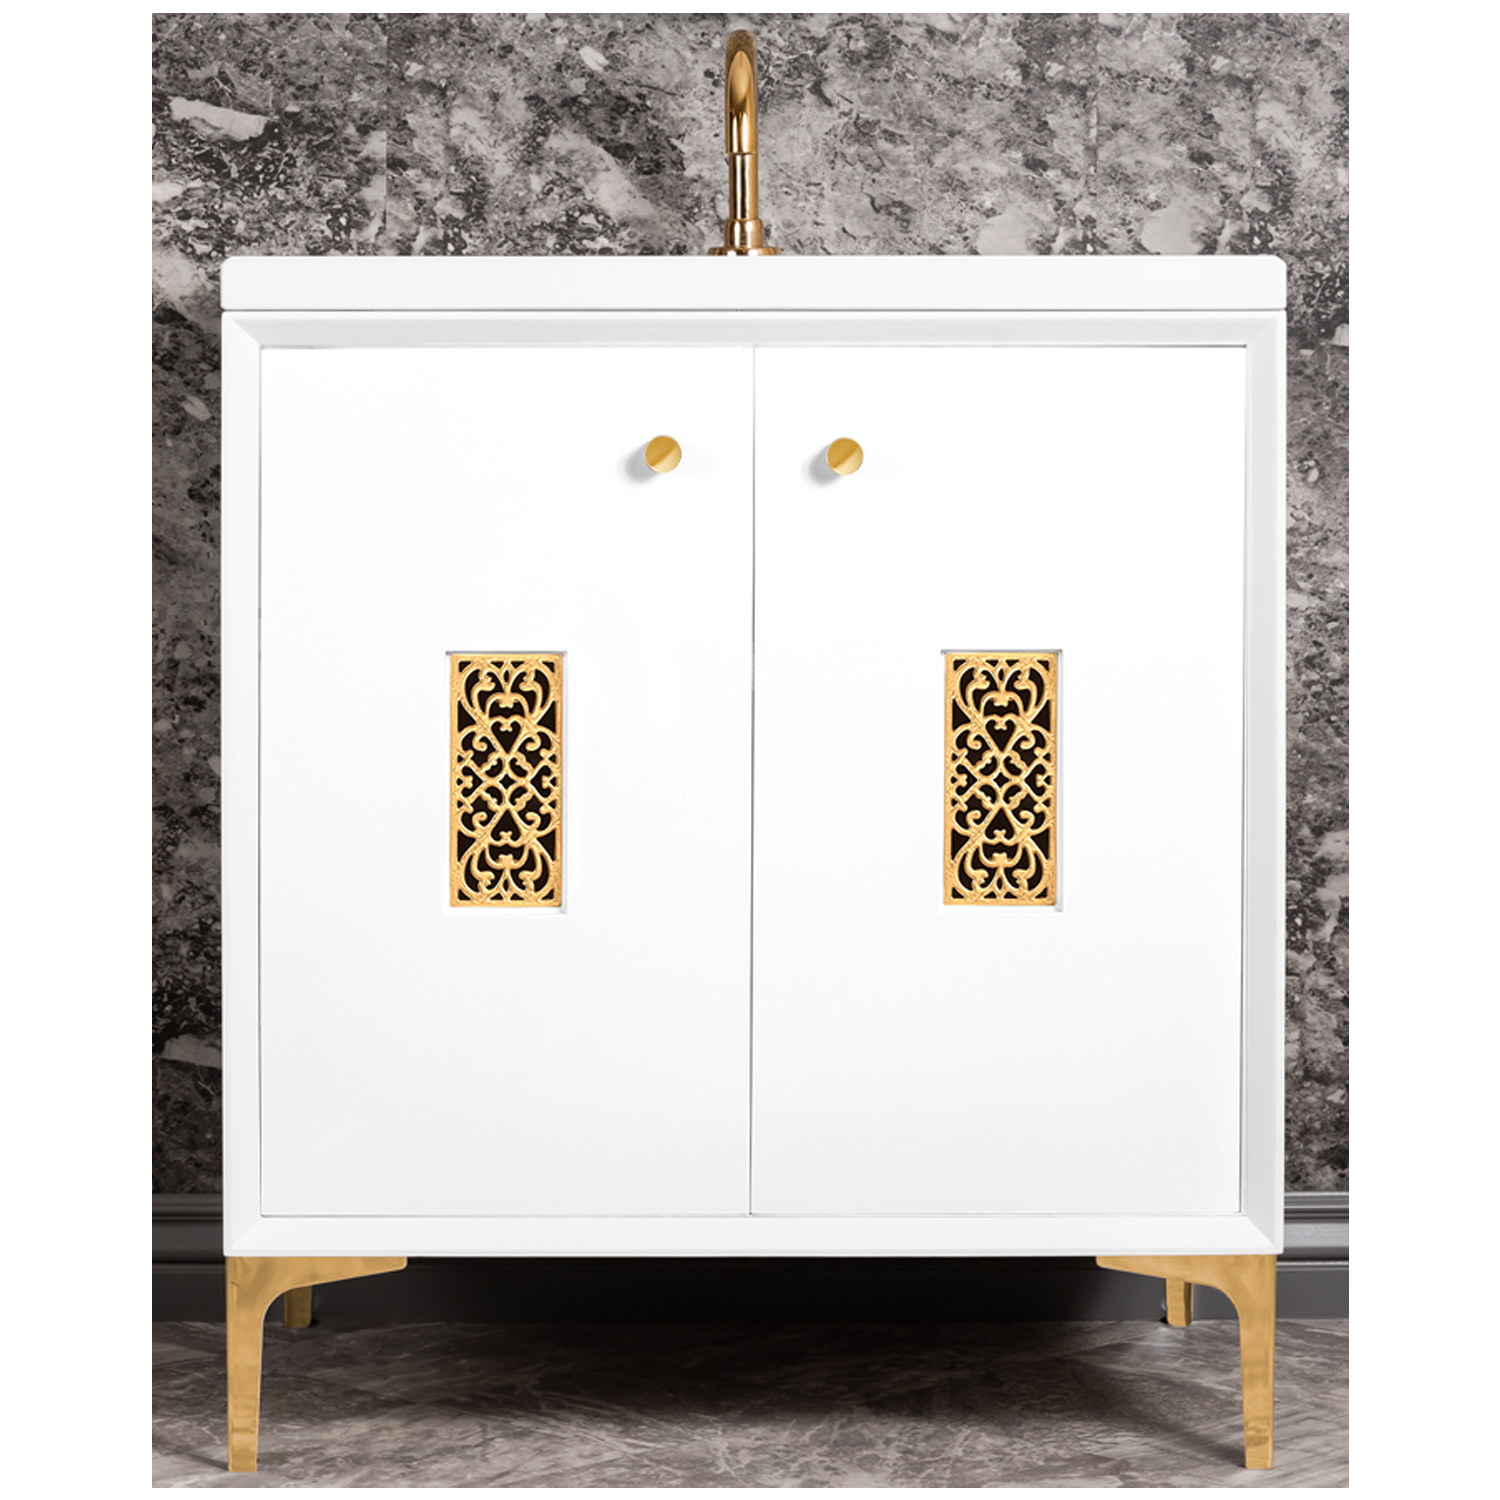 """VAN30W-012   30"""" White Frame with Filigree - Shown with PB (Polished Brass)"""